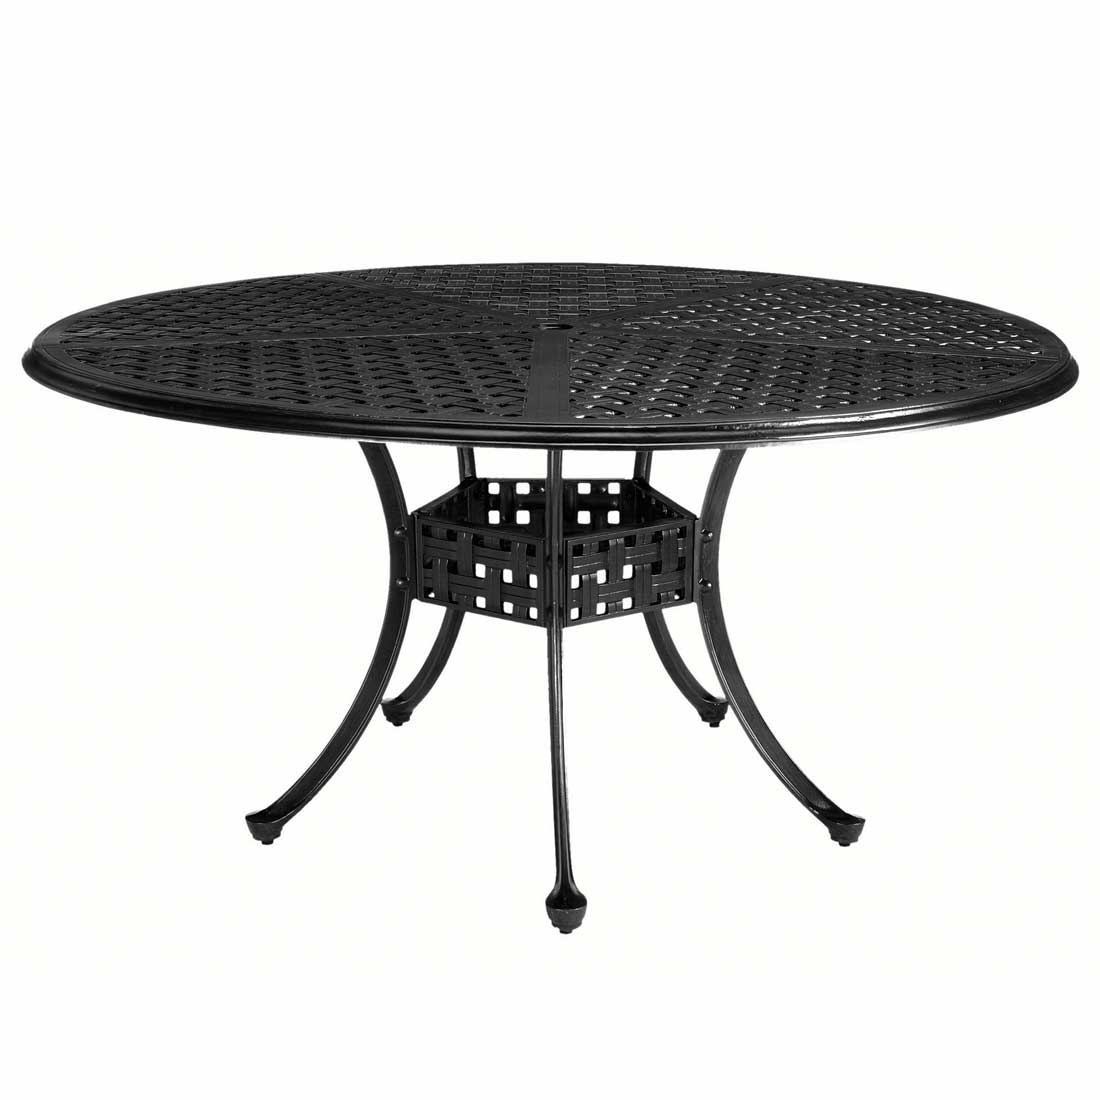 Double Lattice Leg Dining Base Outdoor Table Base - Outdoor table legs and bases